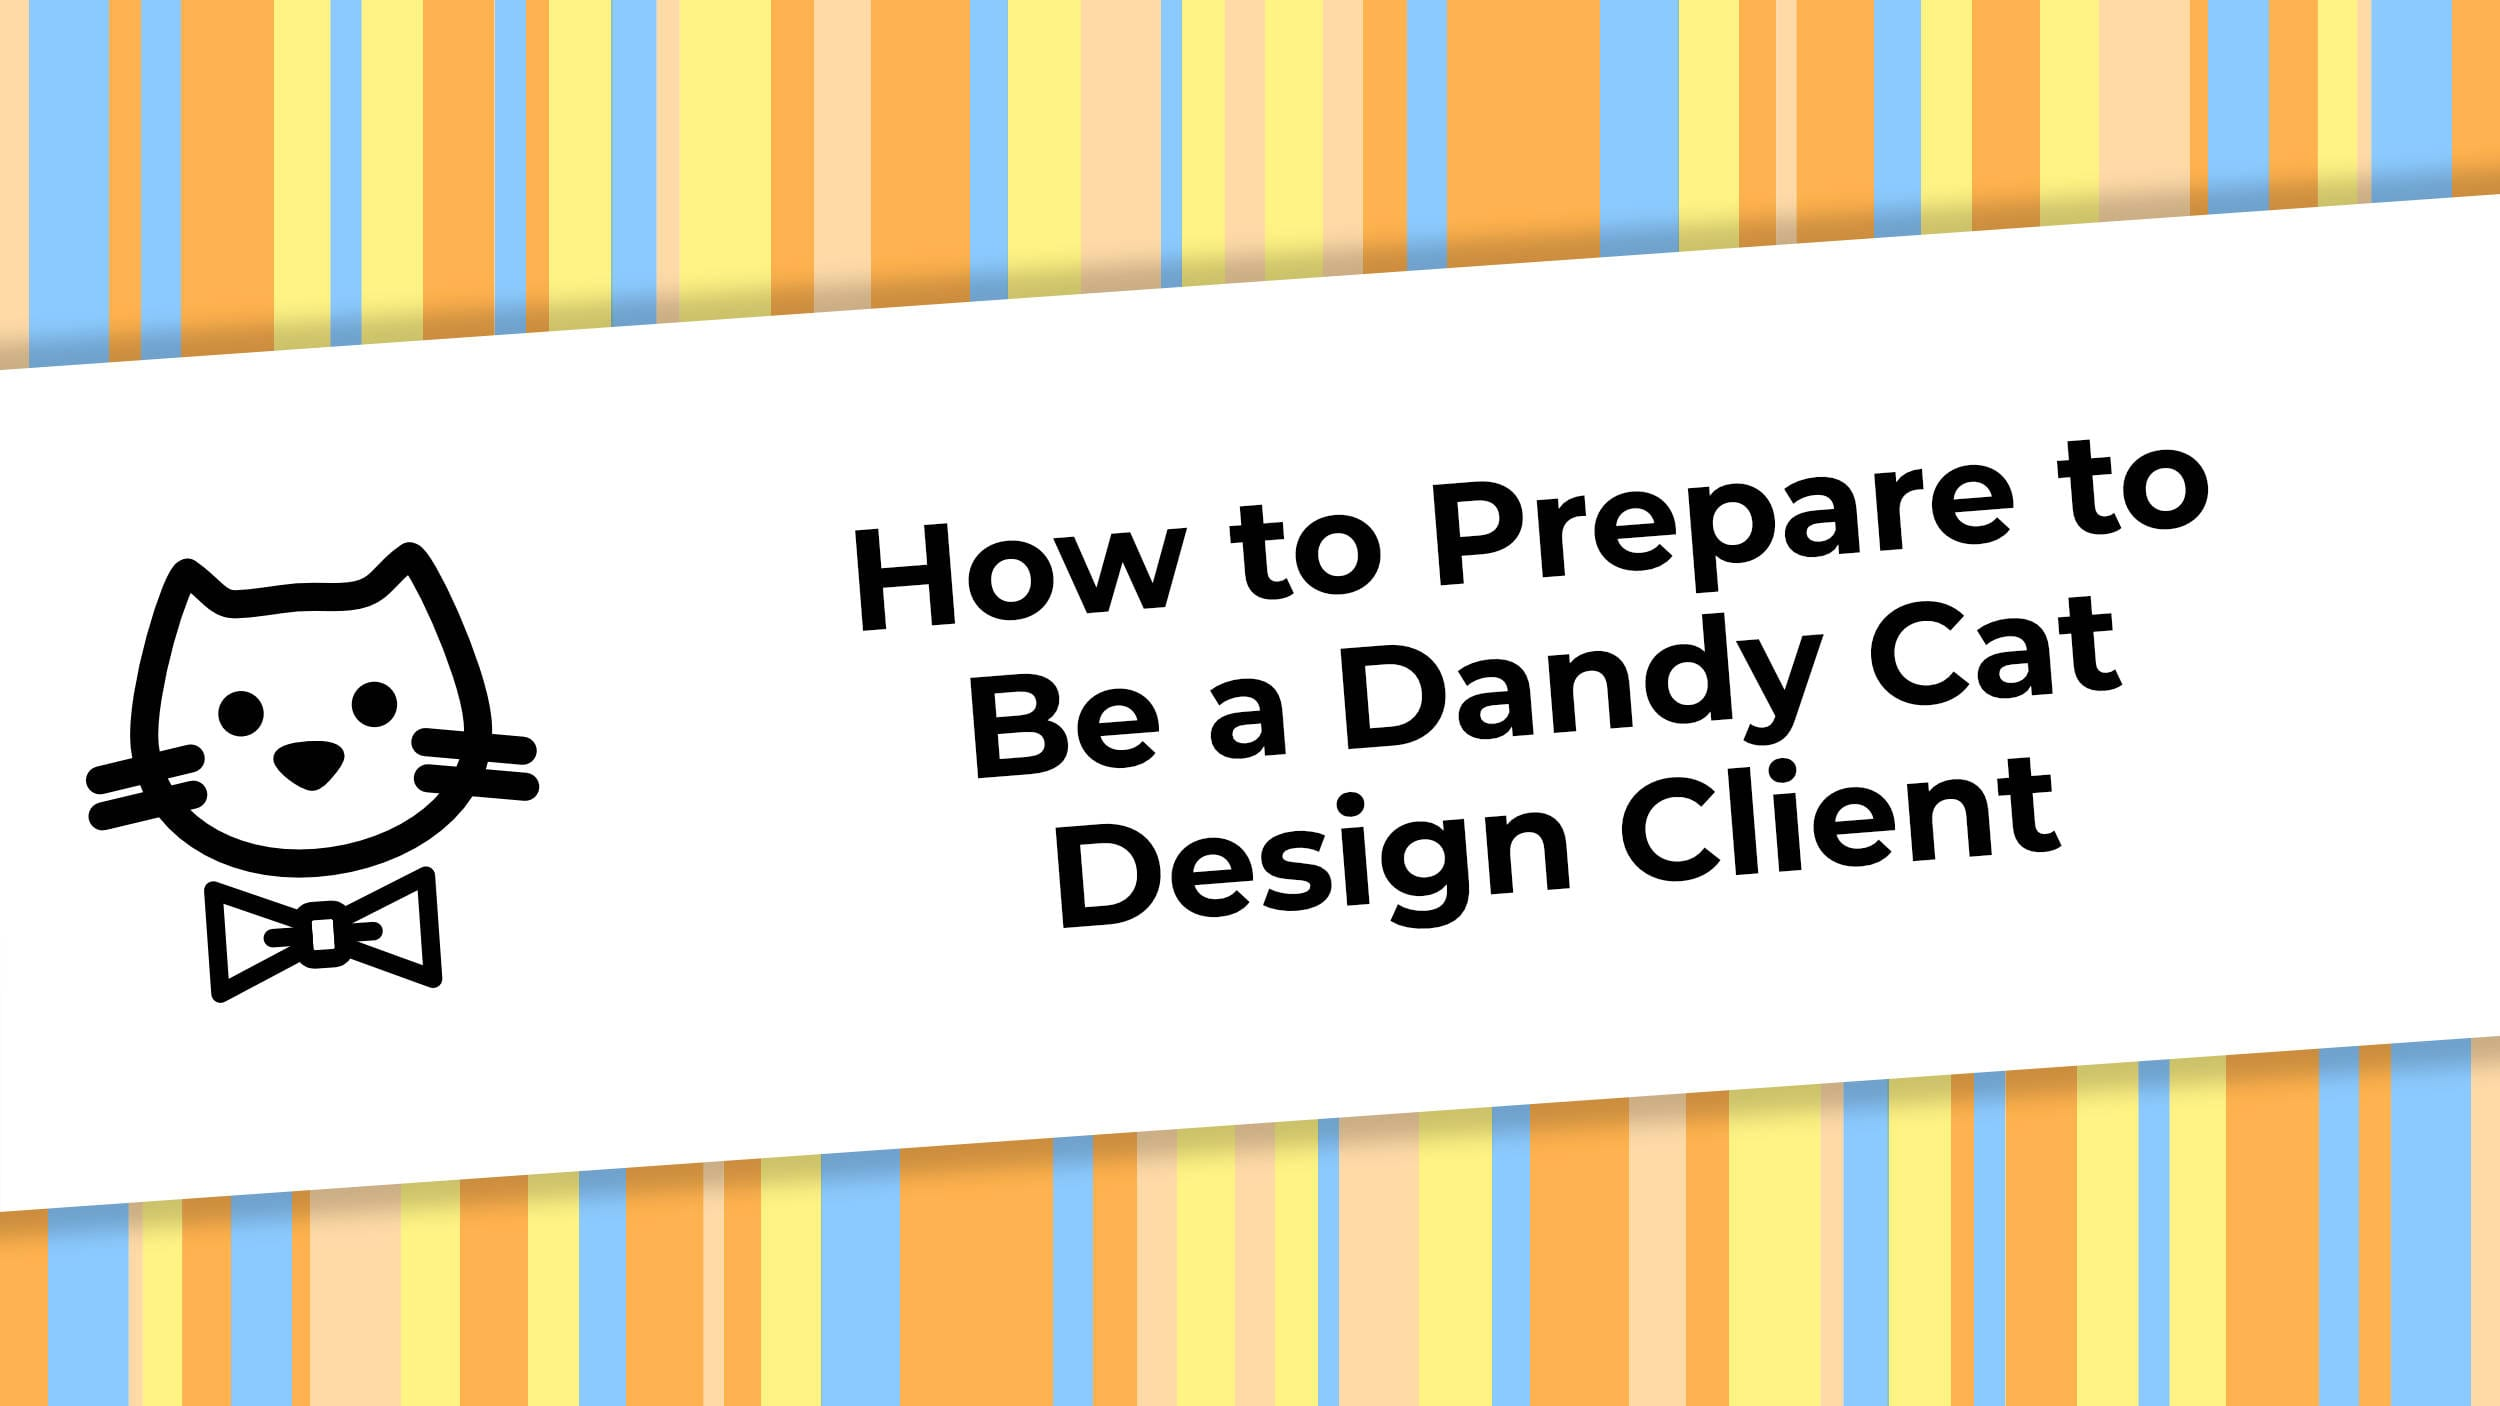 An orange- and blue-striped background behind a white banner with black text and the Dandy Cat Design logo serving as the main image for this blog post.